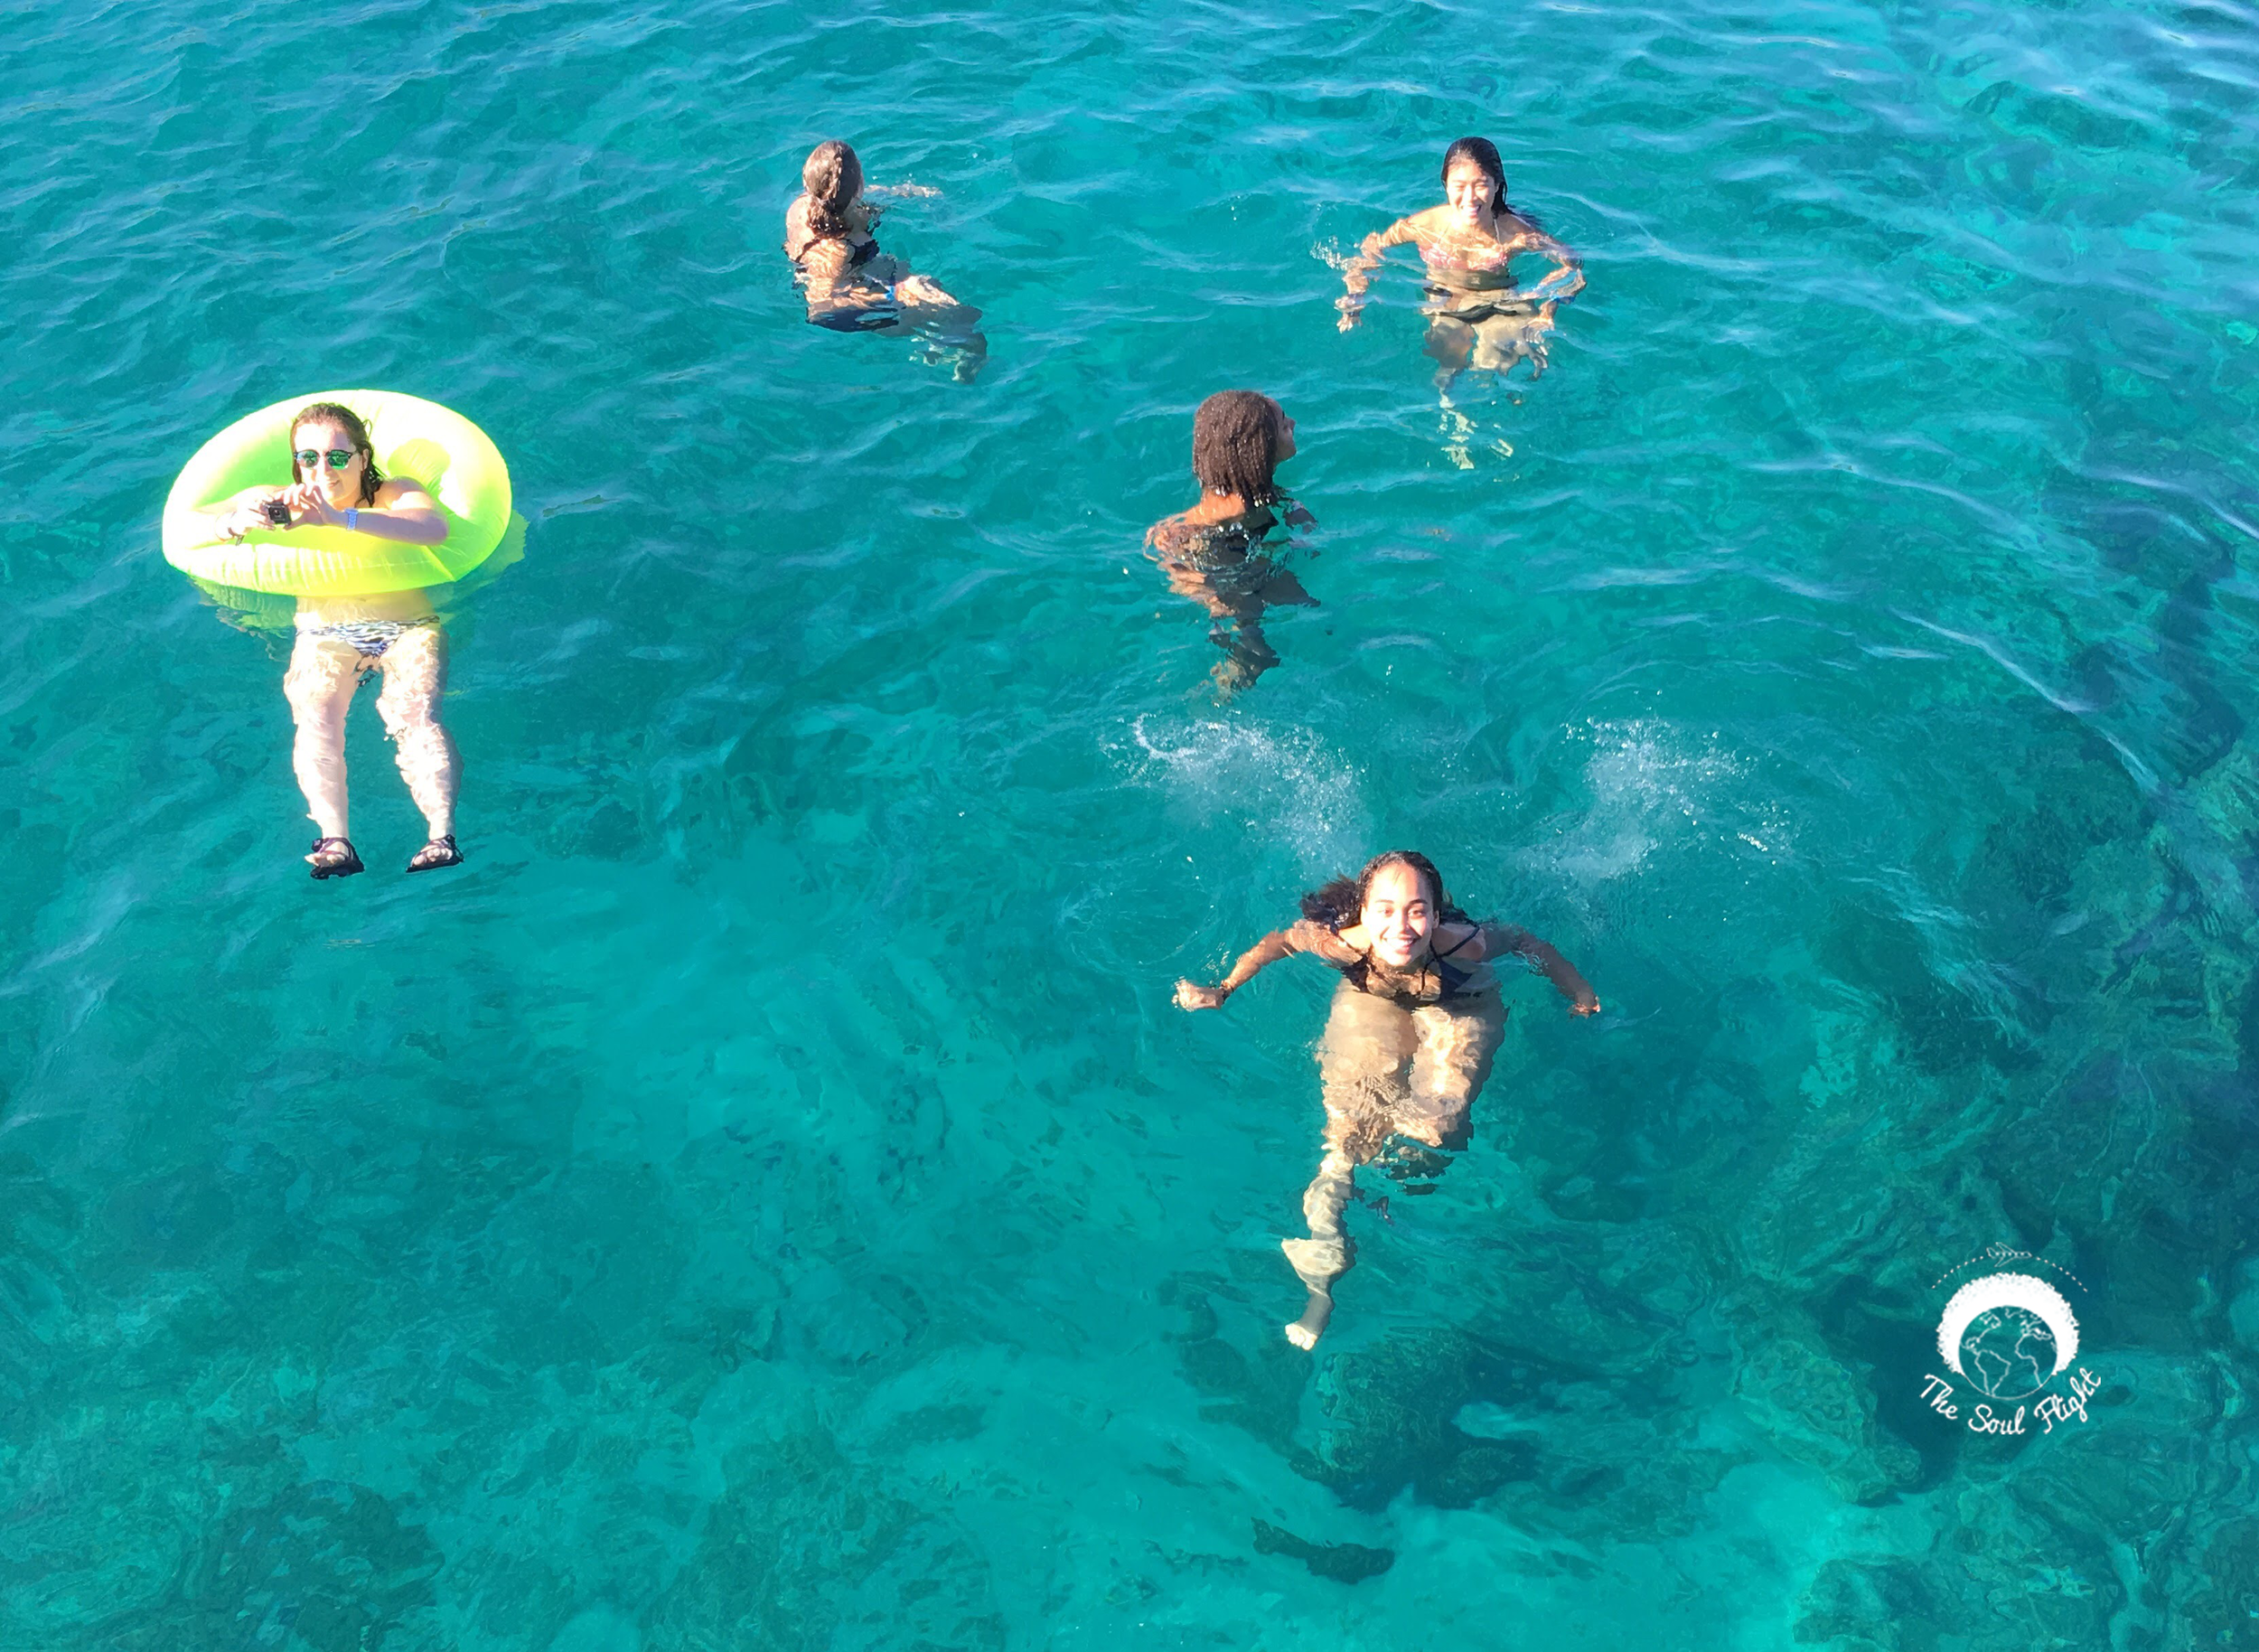 Peep Shelby with her green tube - (No edits or filters on the color of the water were applied)